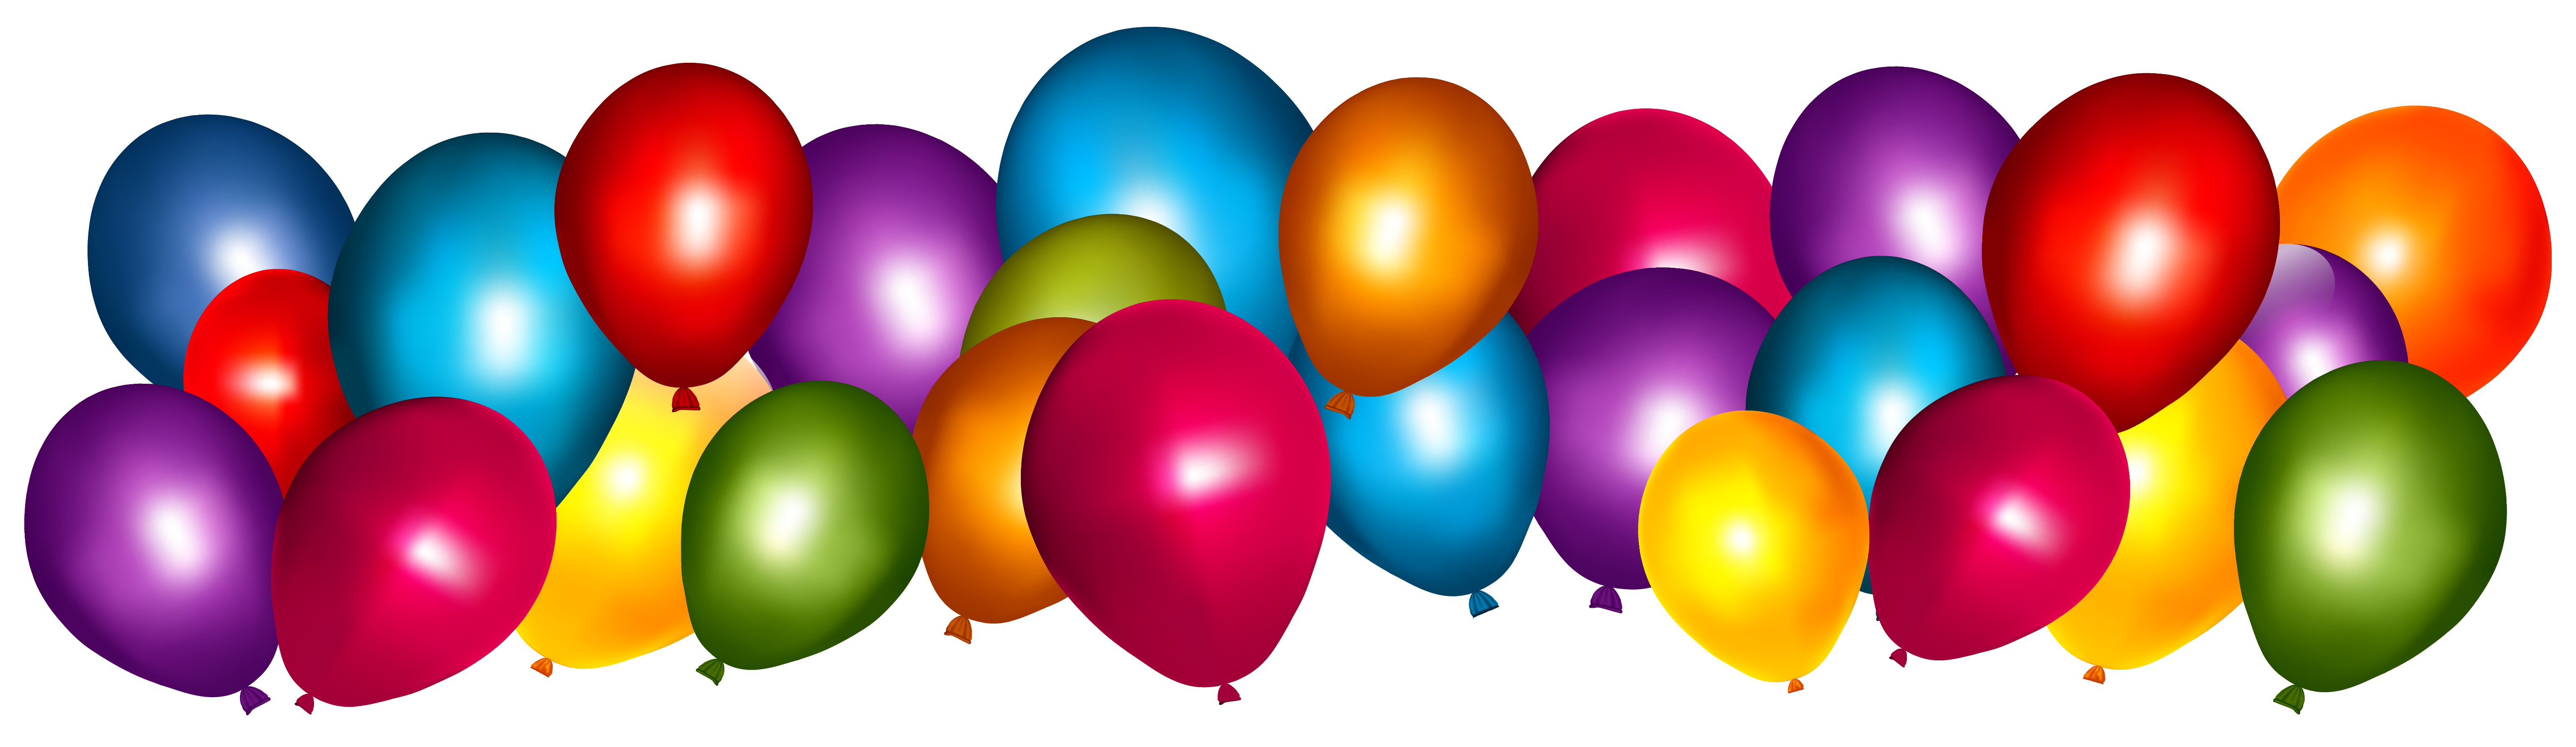 6152x1785 Transparent Colorful Balloons Png Clipart Imageu200b Gallery